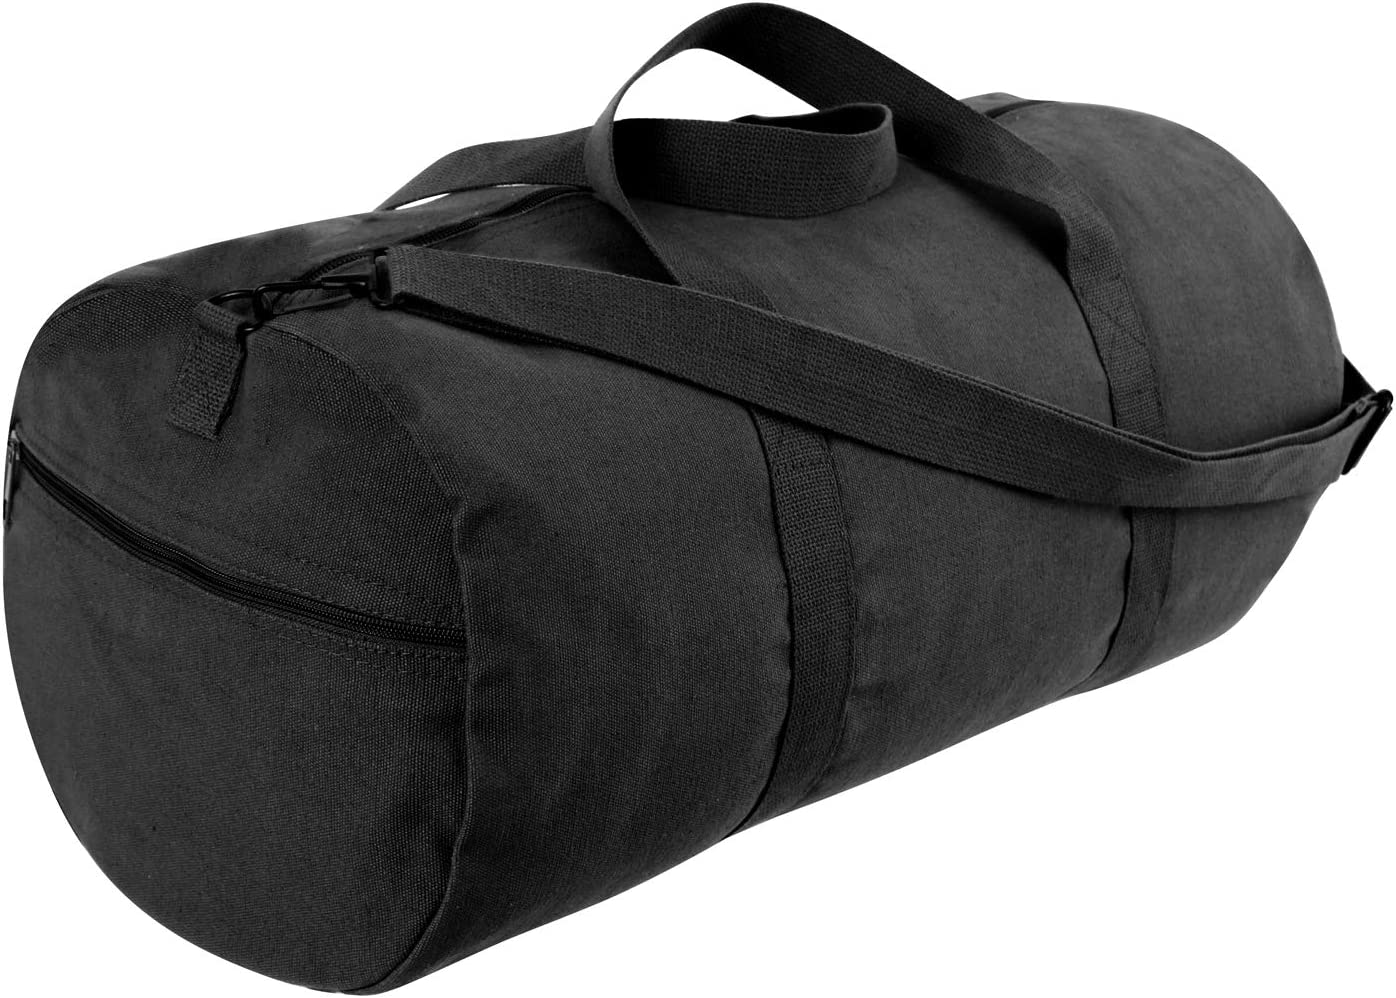 Rothco Canvas Shoulder Duffle Bag – 24 Inch, Black